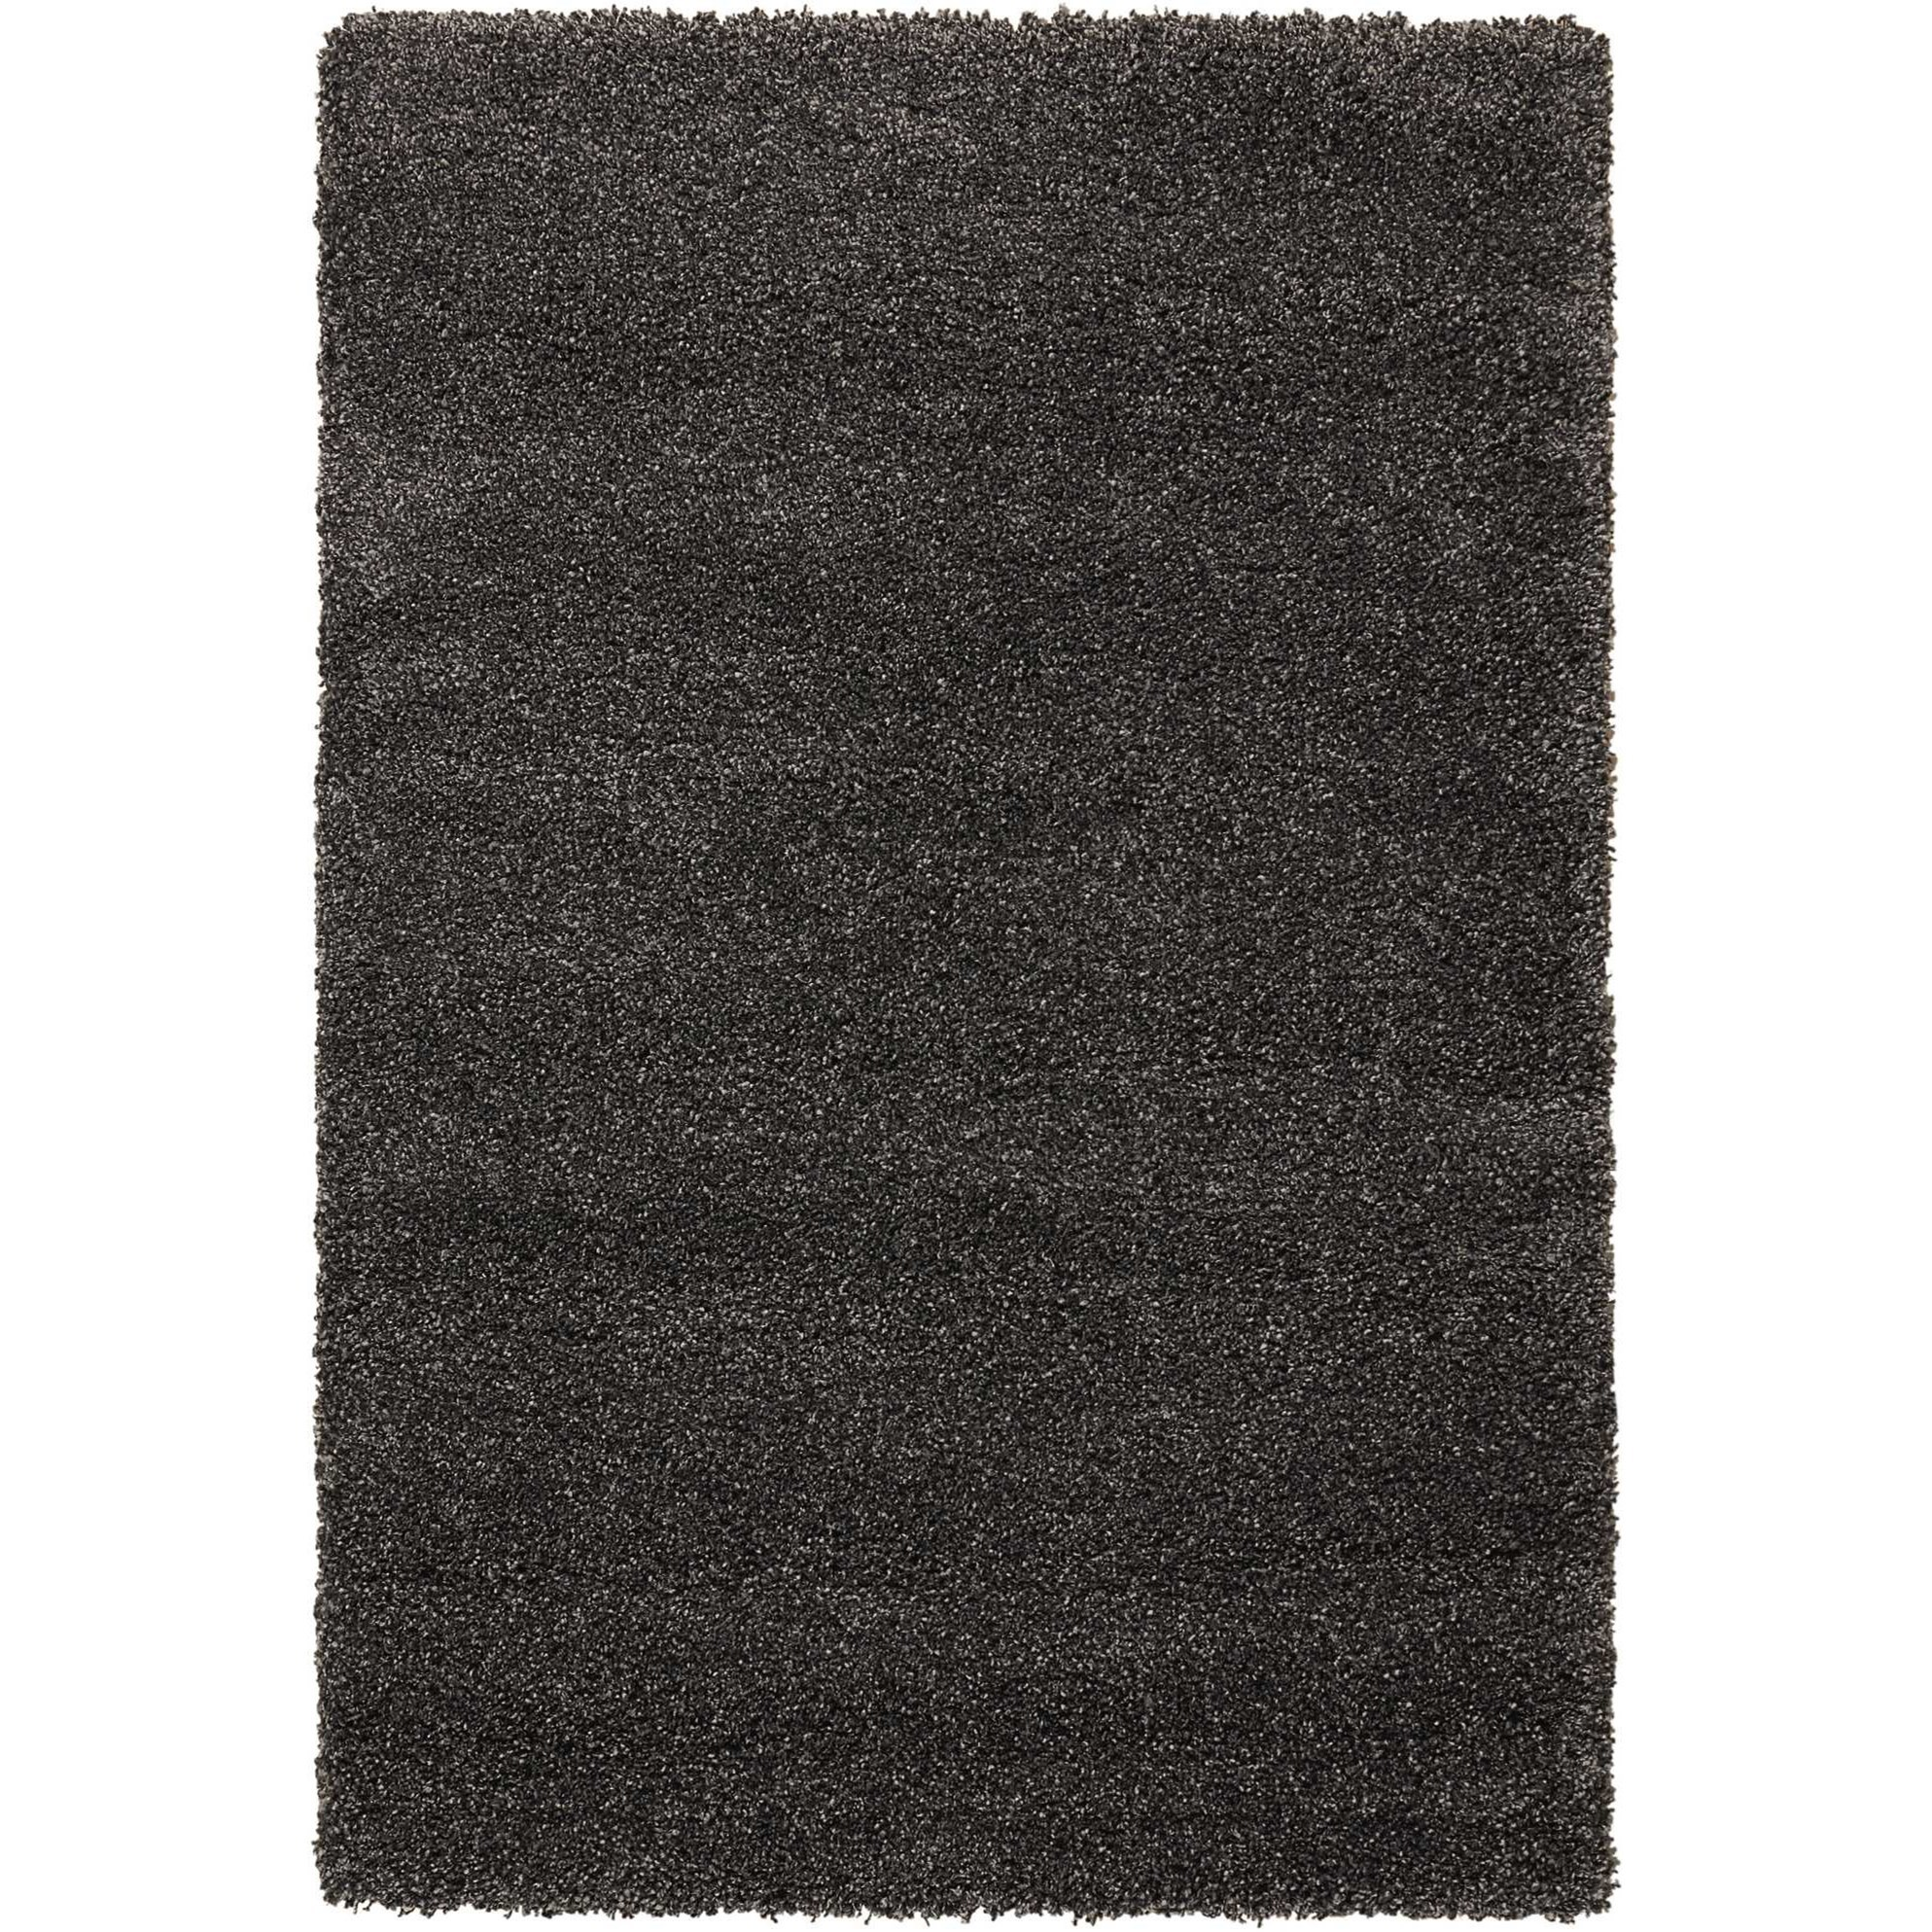 """Amore 5'3"""" x 7'5"""" Dark Grey Rectangle Rug by Nourison at Home Collections Furniture"""